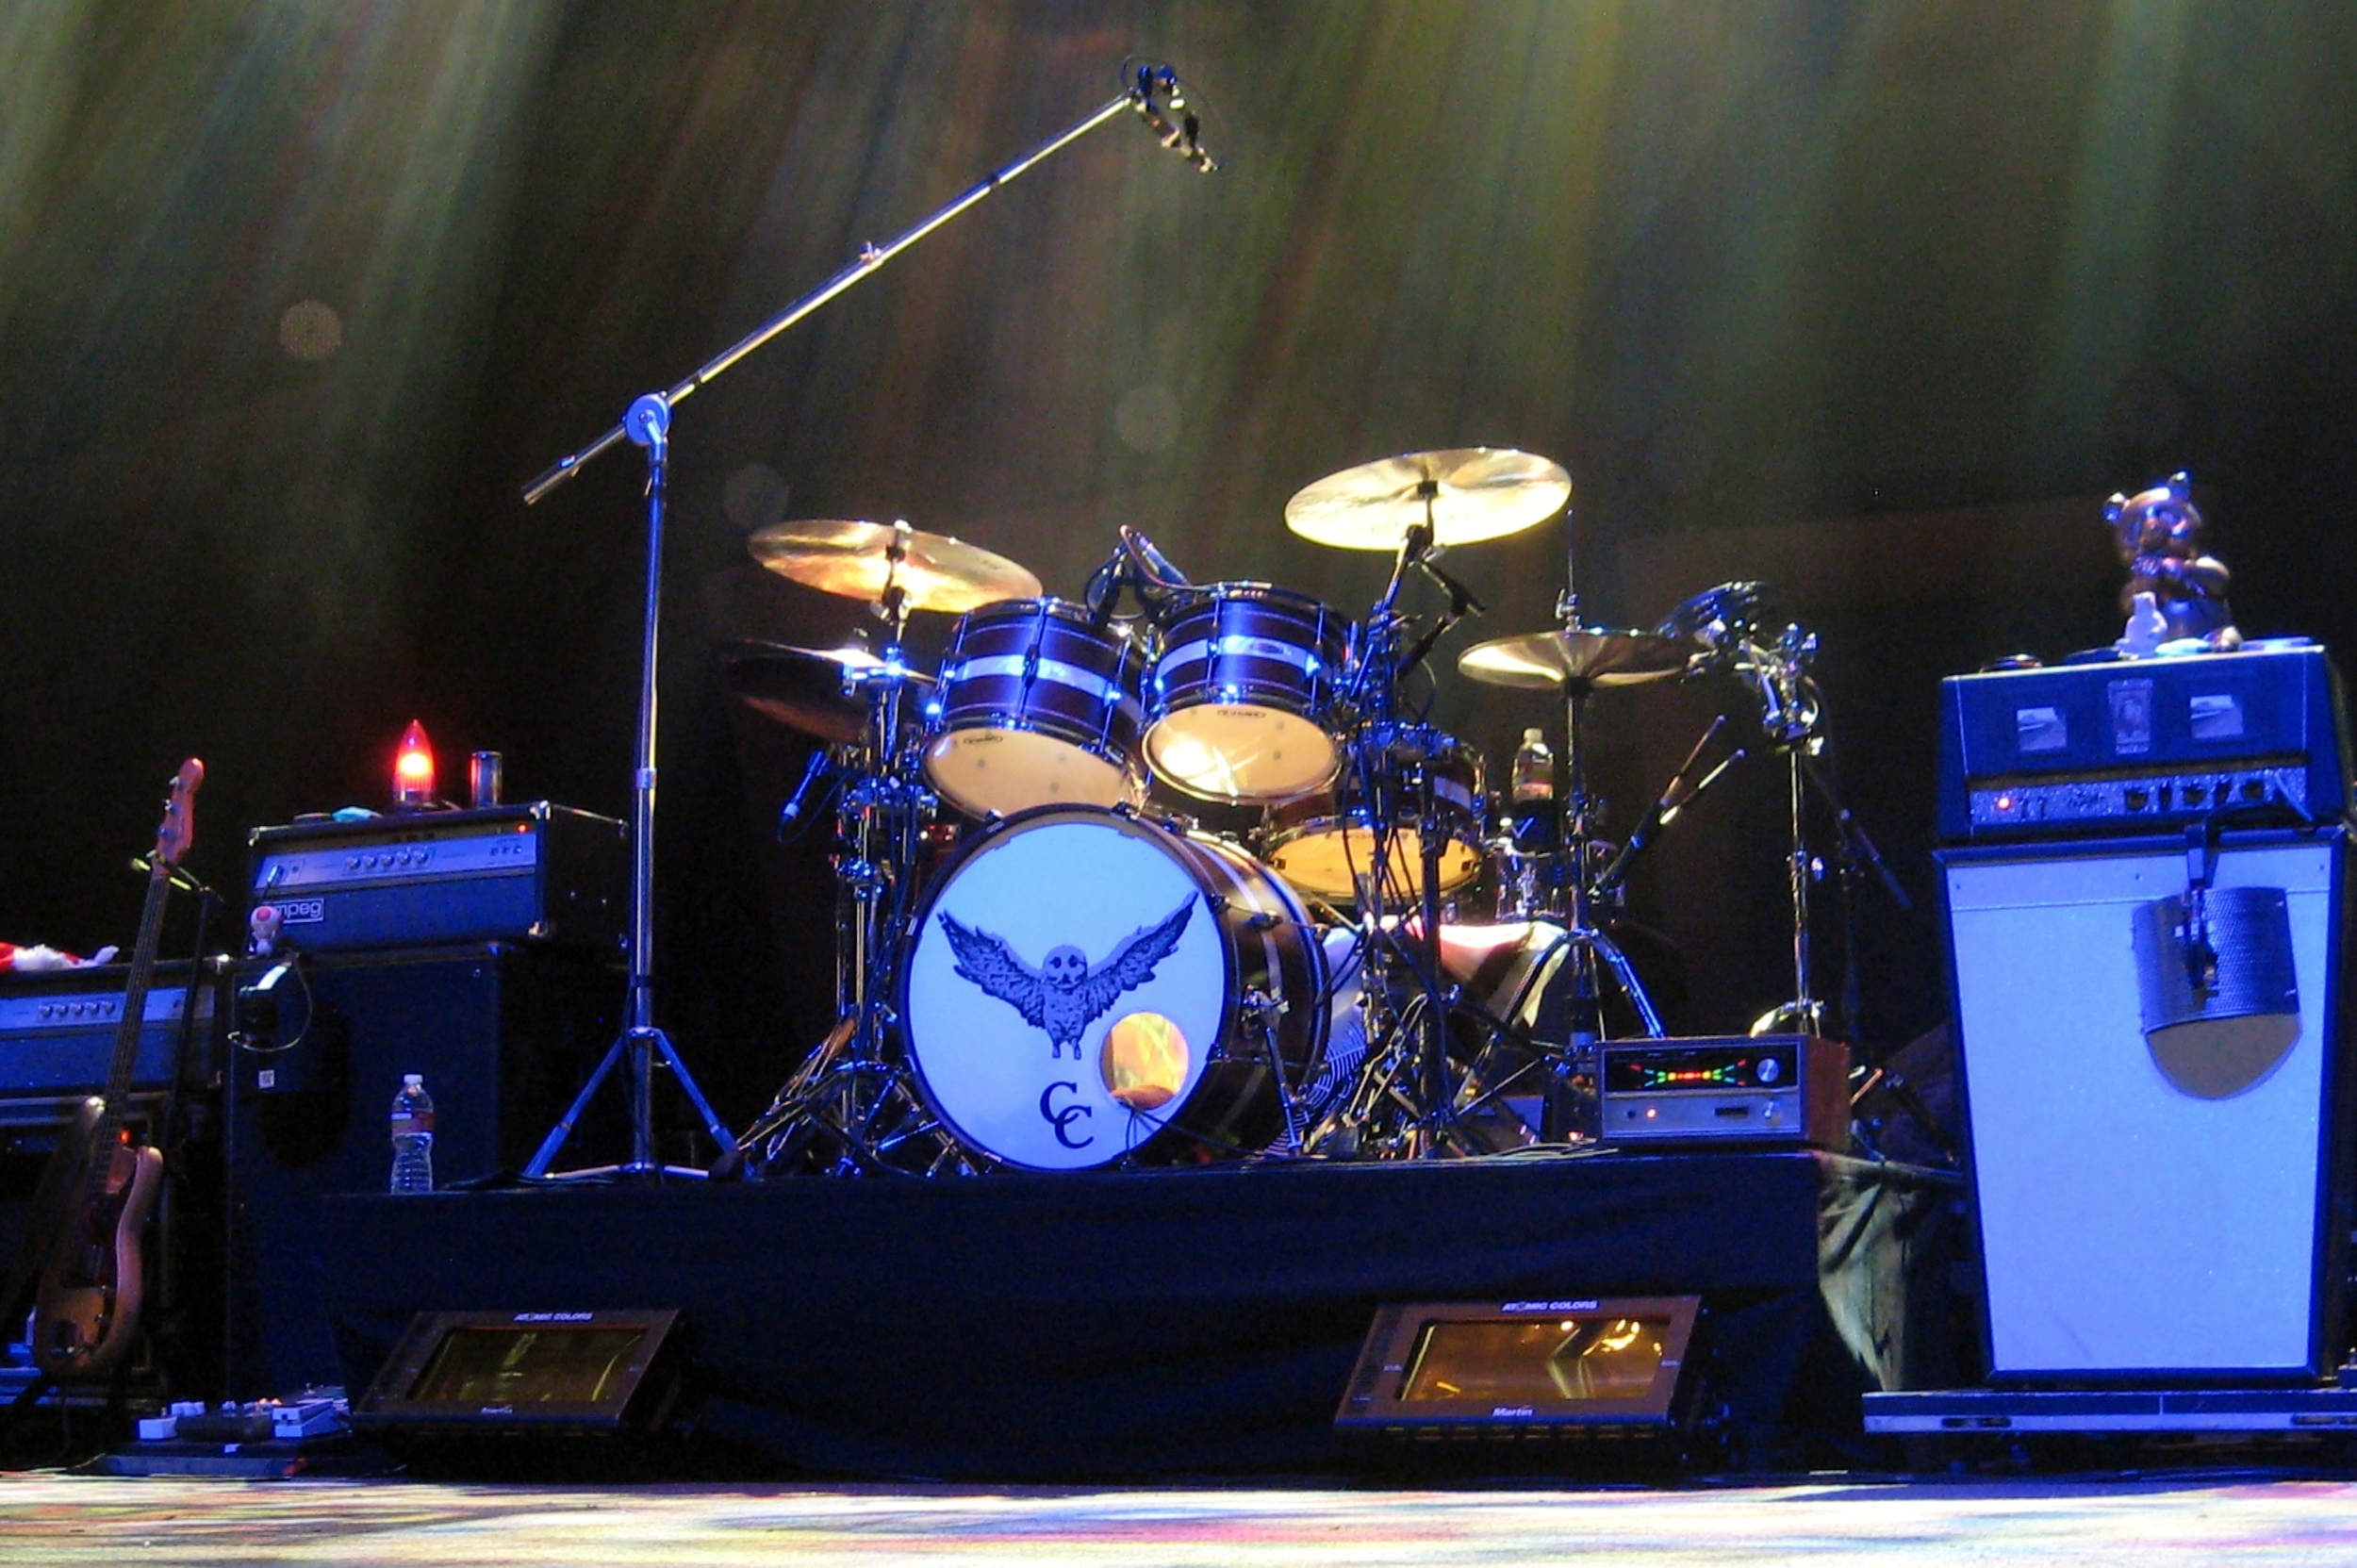 The VR1s as drum overheads on tour with My Morning Jacket.